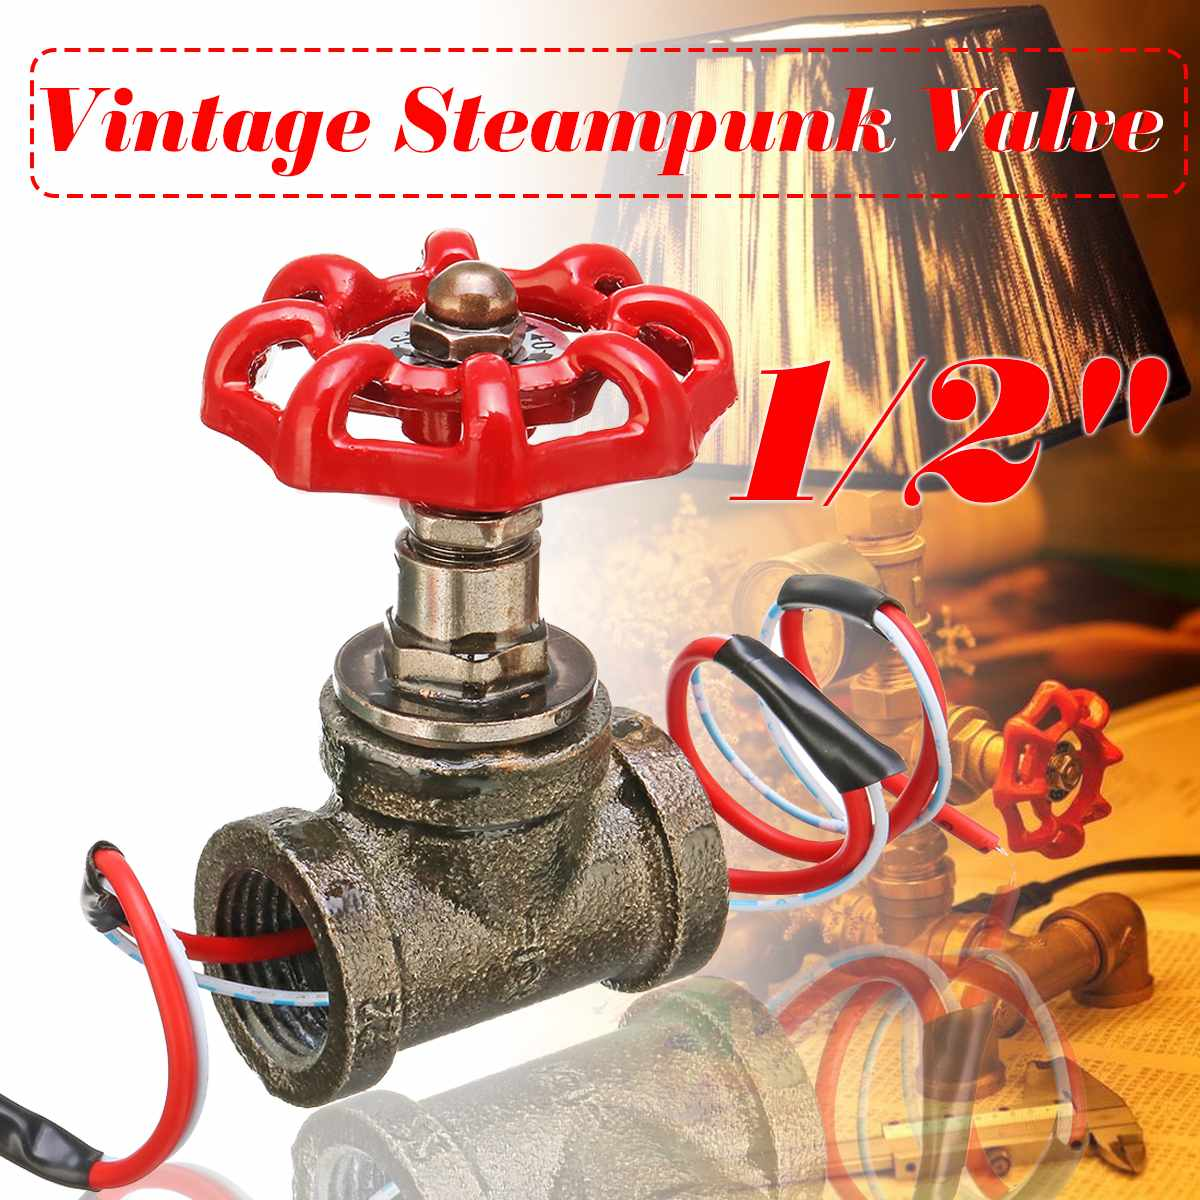 1PCS 1/2 Inch Stop Valve Light Vintage Steampunk Switch With Wire For Water Pipe Lamps Lamp Loft Style Iron Valve Vintage Lamp